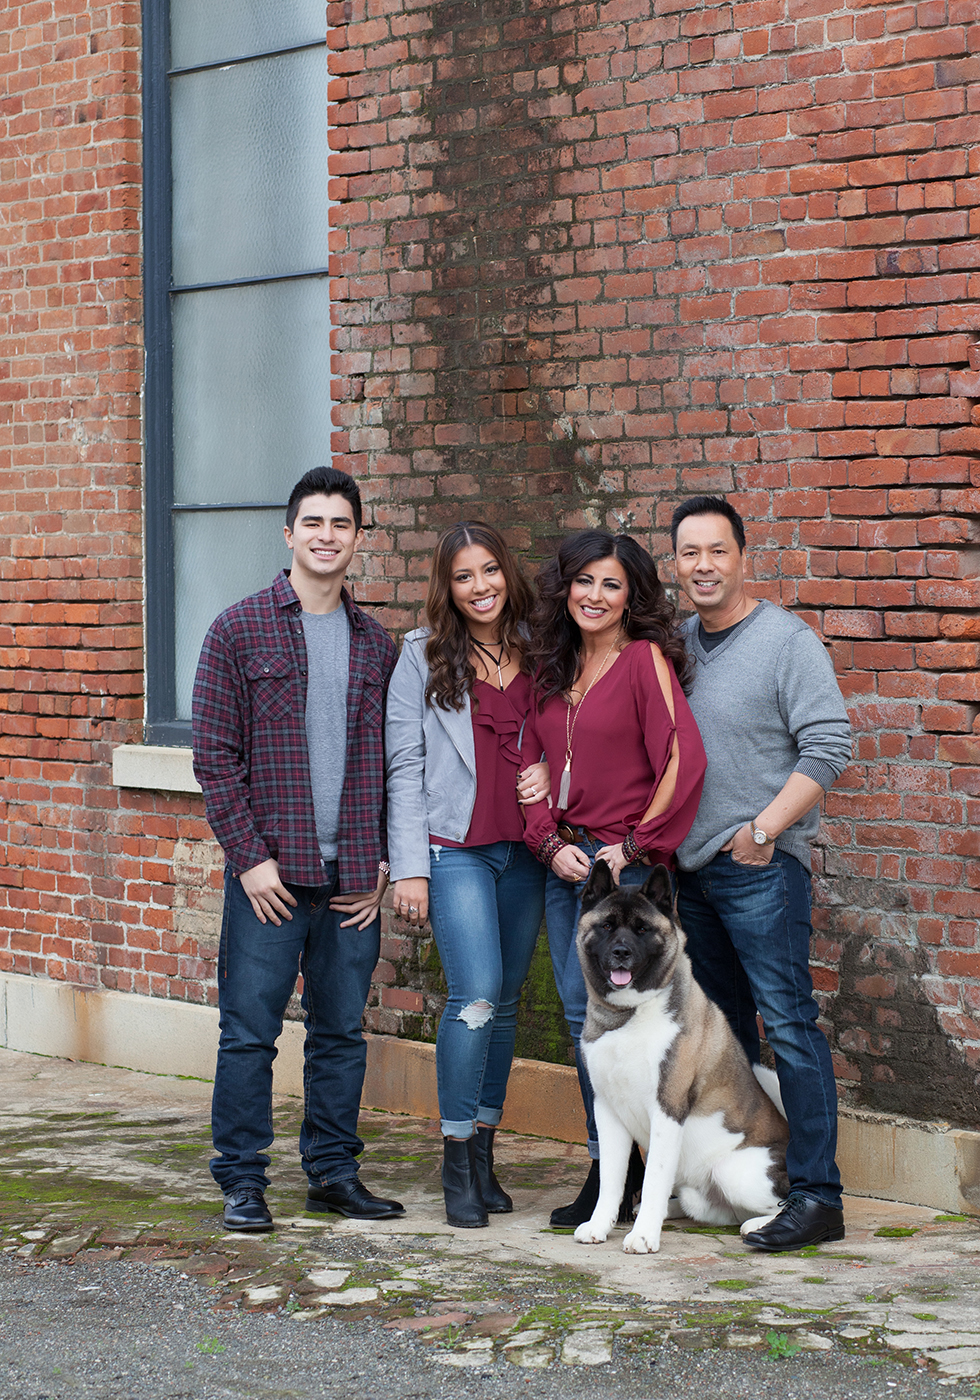 IMG_9427_urban_family_portrait_brick_wall_dog_San_Ramon_Cal_high_family_senior_gretchen-adams-photography.jpg